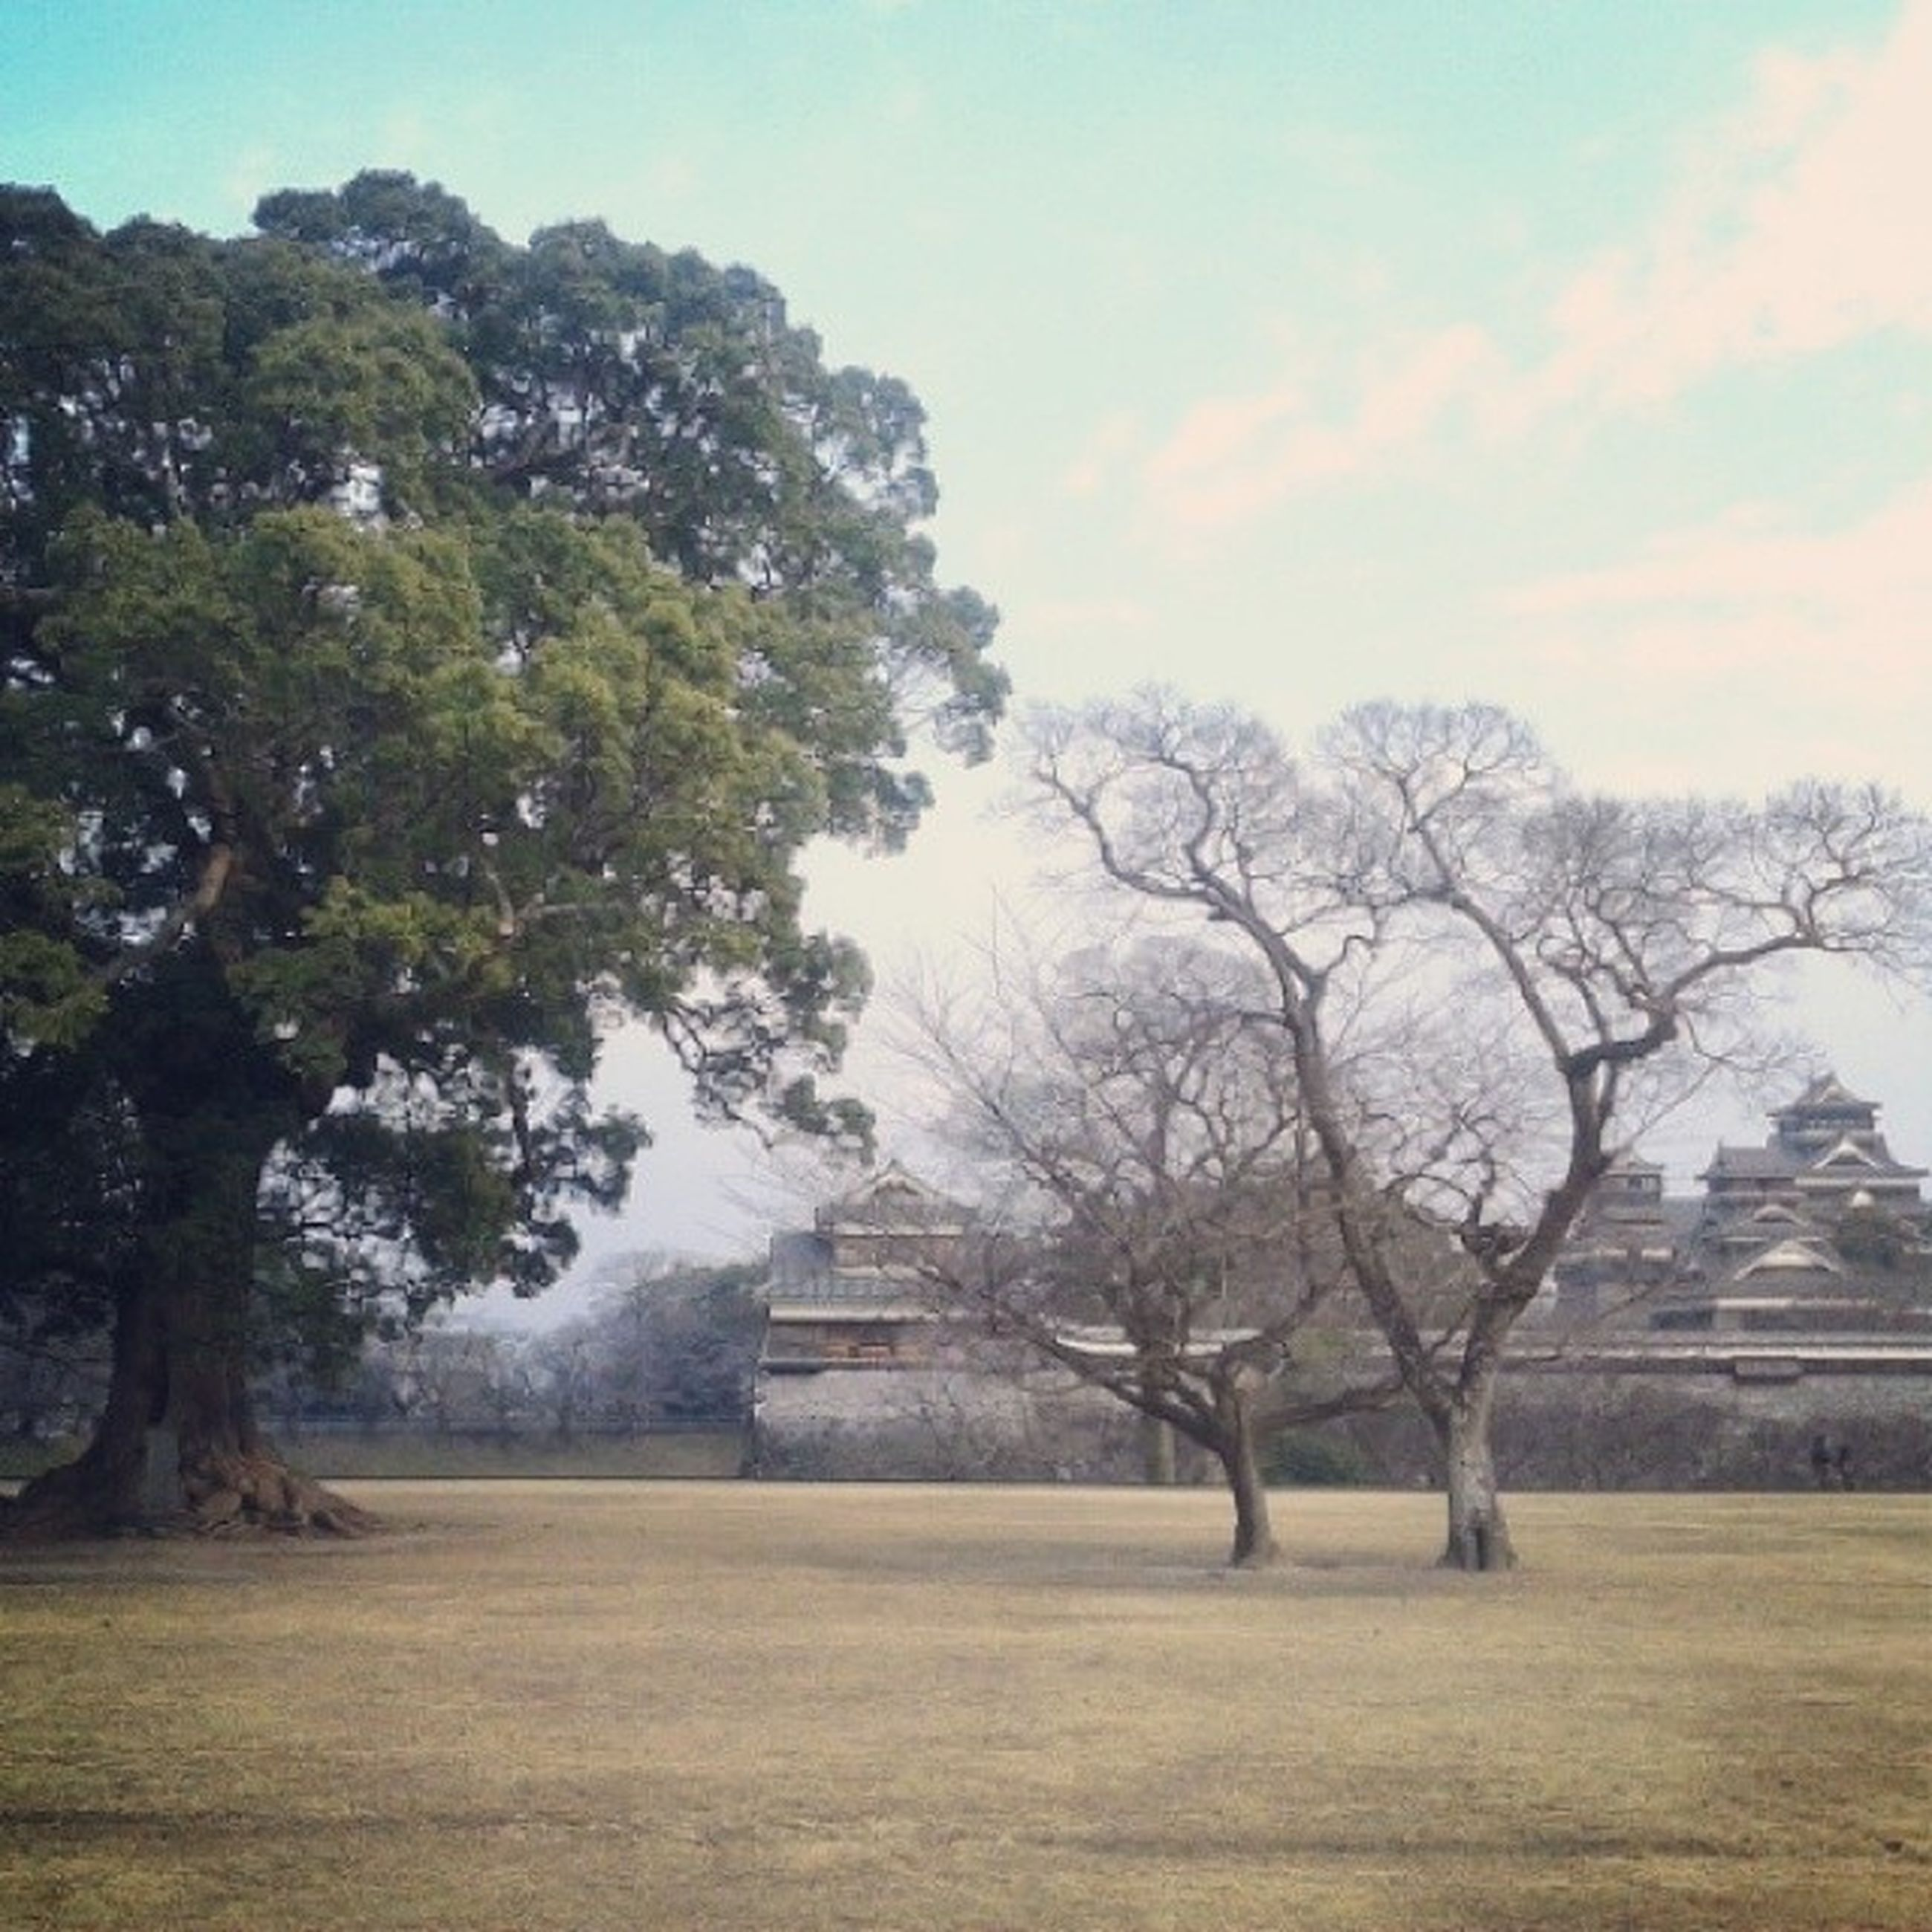 tree, architecture, built structure, sky, building exterior, history, bare tree, grass, tranquility, travel destinations, nature, the past, branch, day, landscape, field, tranquil scene, cloud - sky, no people, old